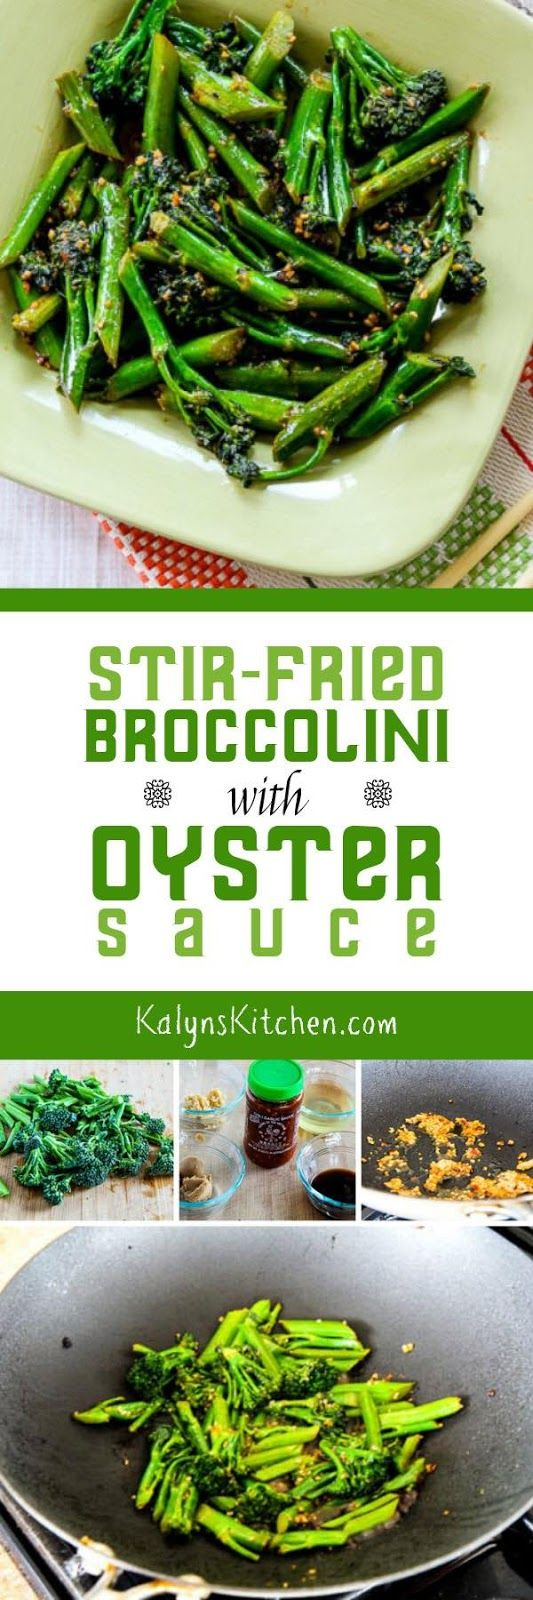 I think Broccolini deserves more love, and this Stir-Fried Broccolini with Oyster Sauce is a delicious and easy way to cook it. And this tasty veggie side dish is low-carb, dairy-free, and South Beach Diet friendly. [found on KalynsKitchen.com]: